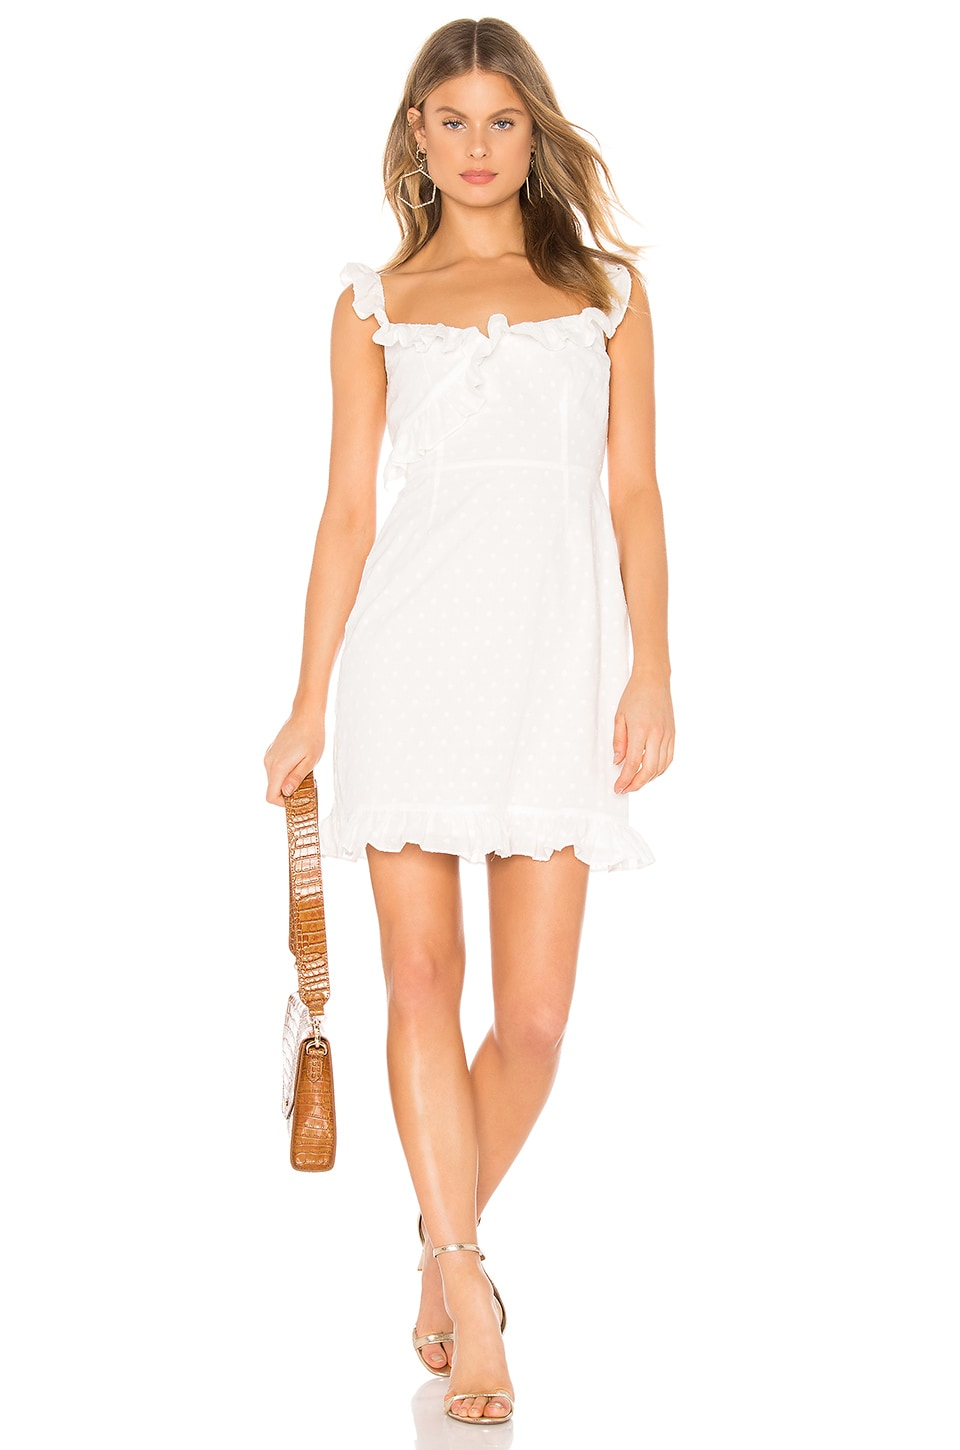 BB Dakota RSVP by BB Dakota Say No More Dress in Ivory